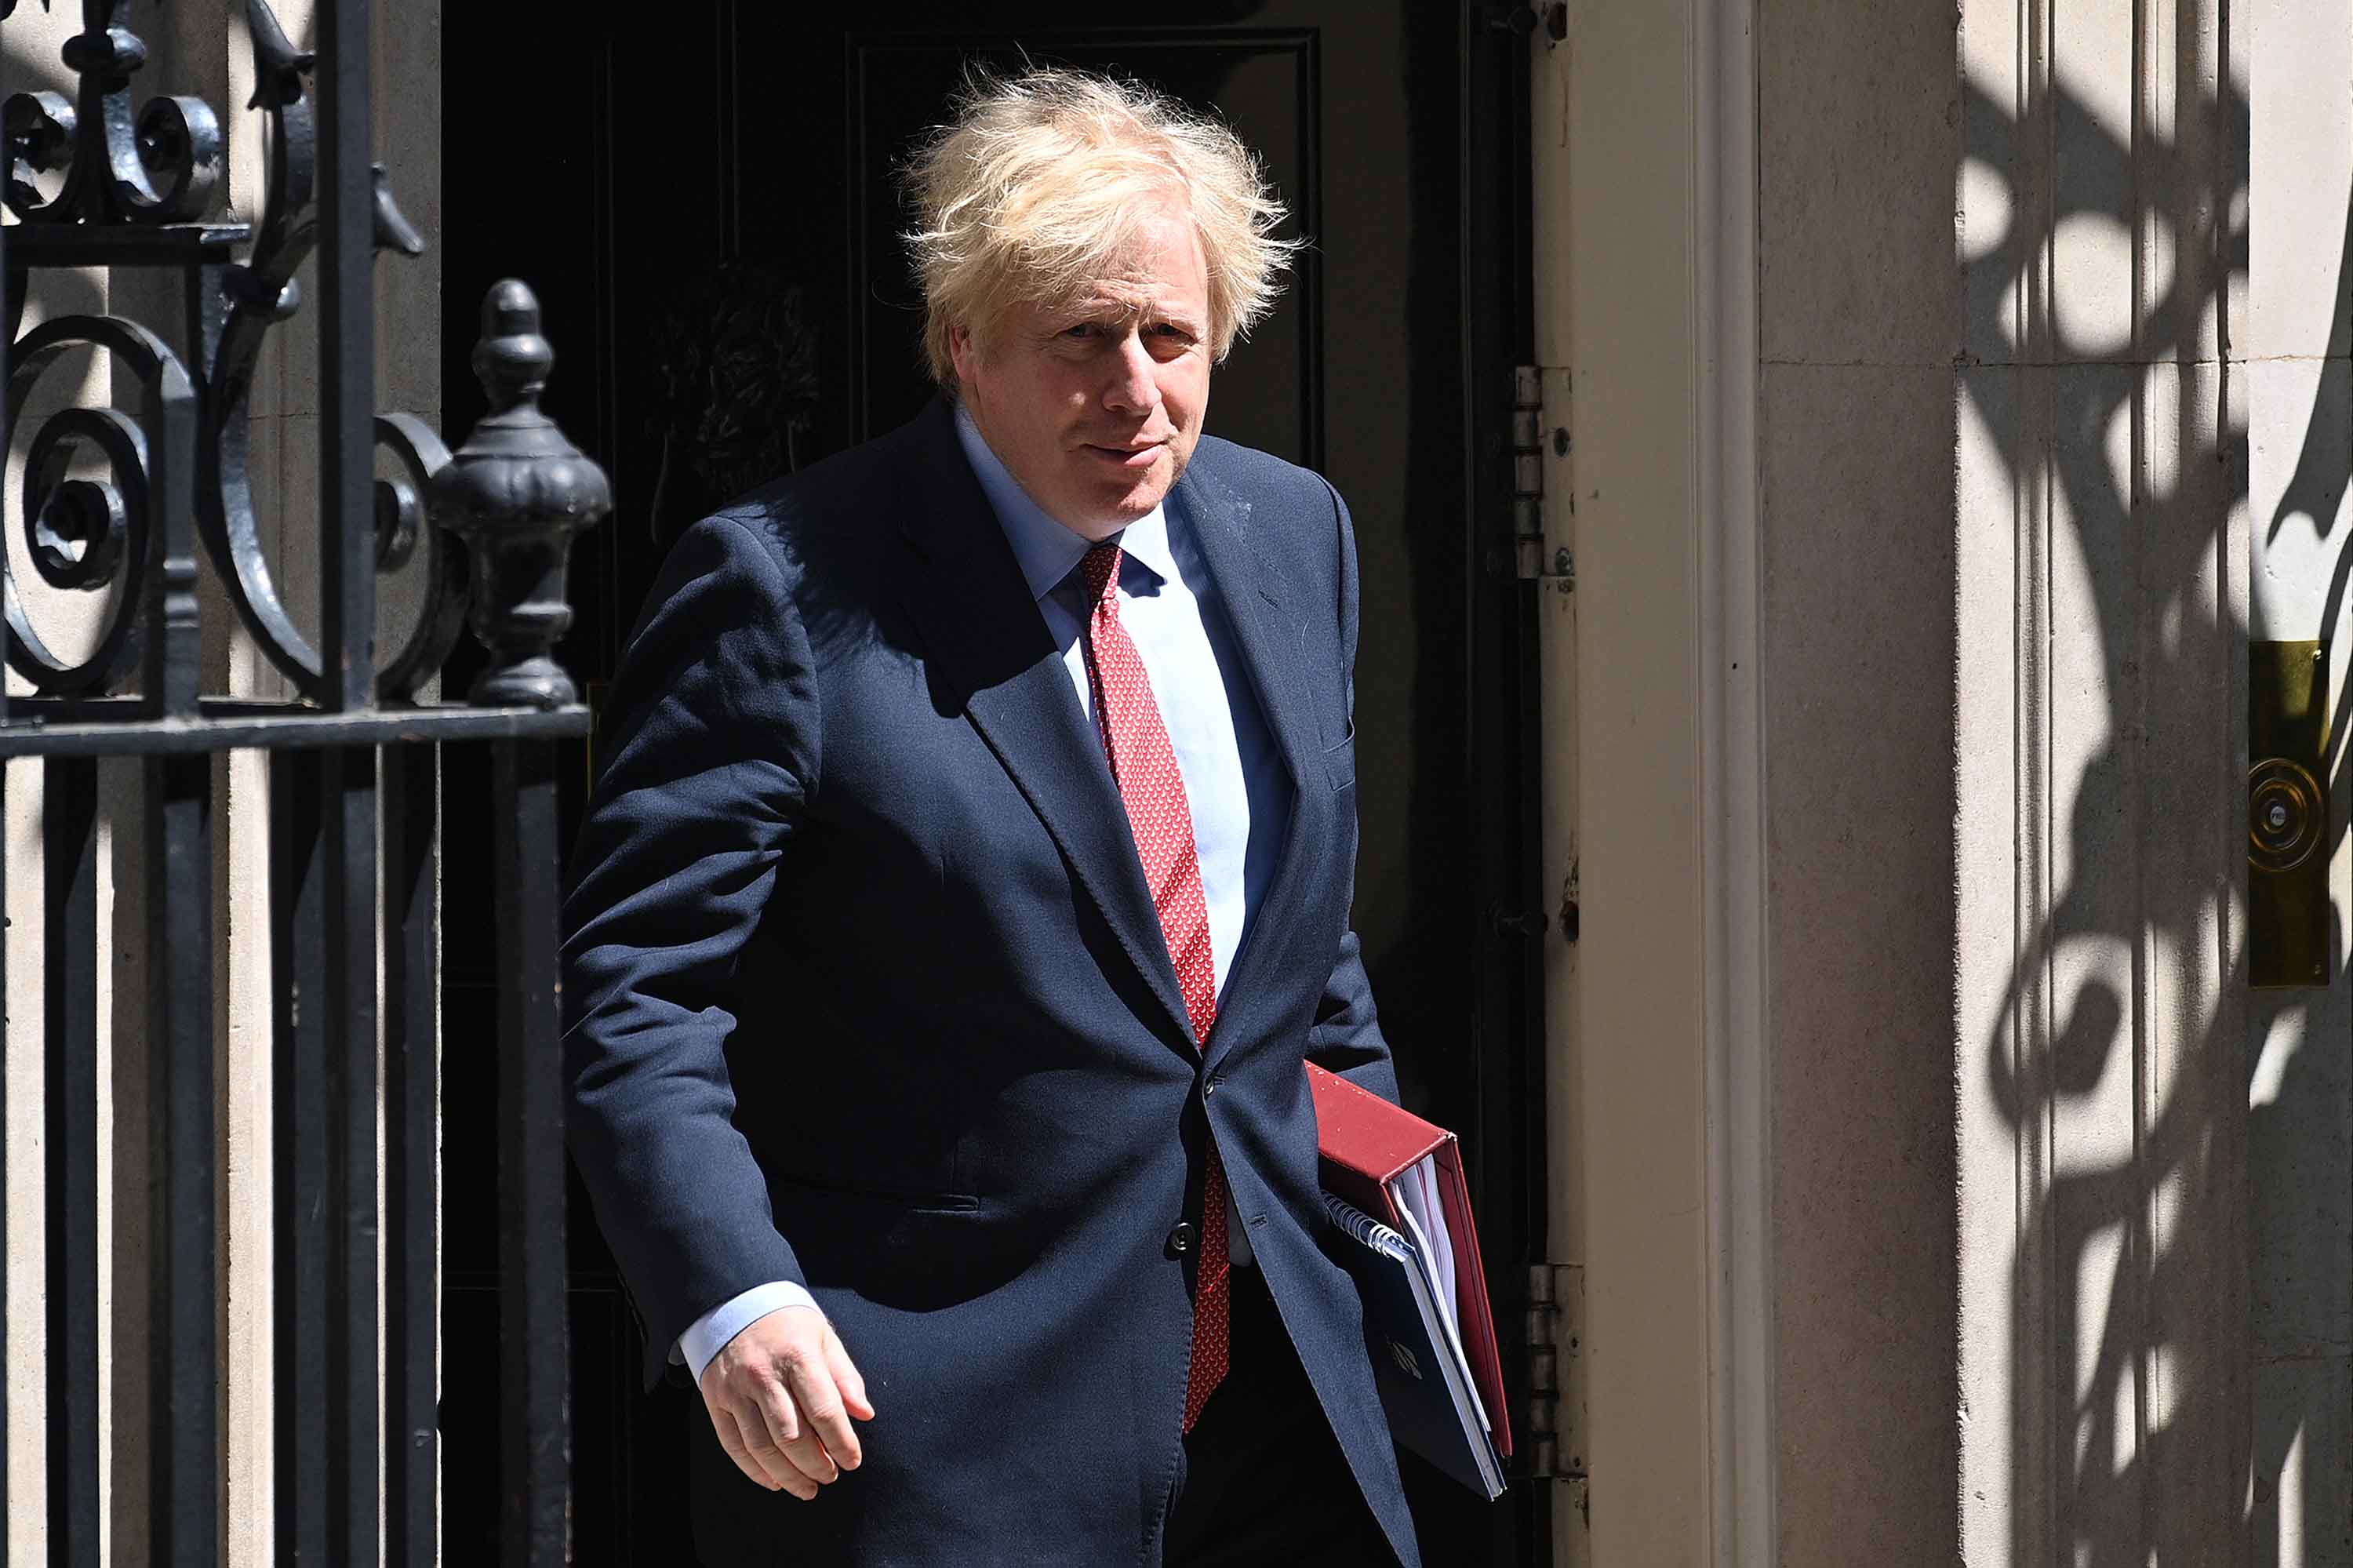 Britian's Prime Minister Boris Johnson leaves 10 Downing Street in London on May 20.